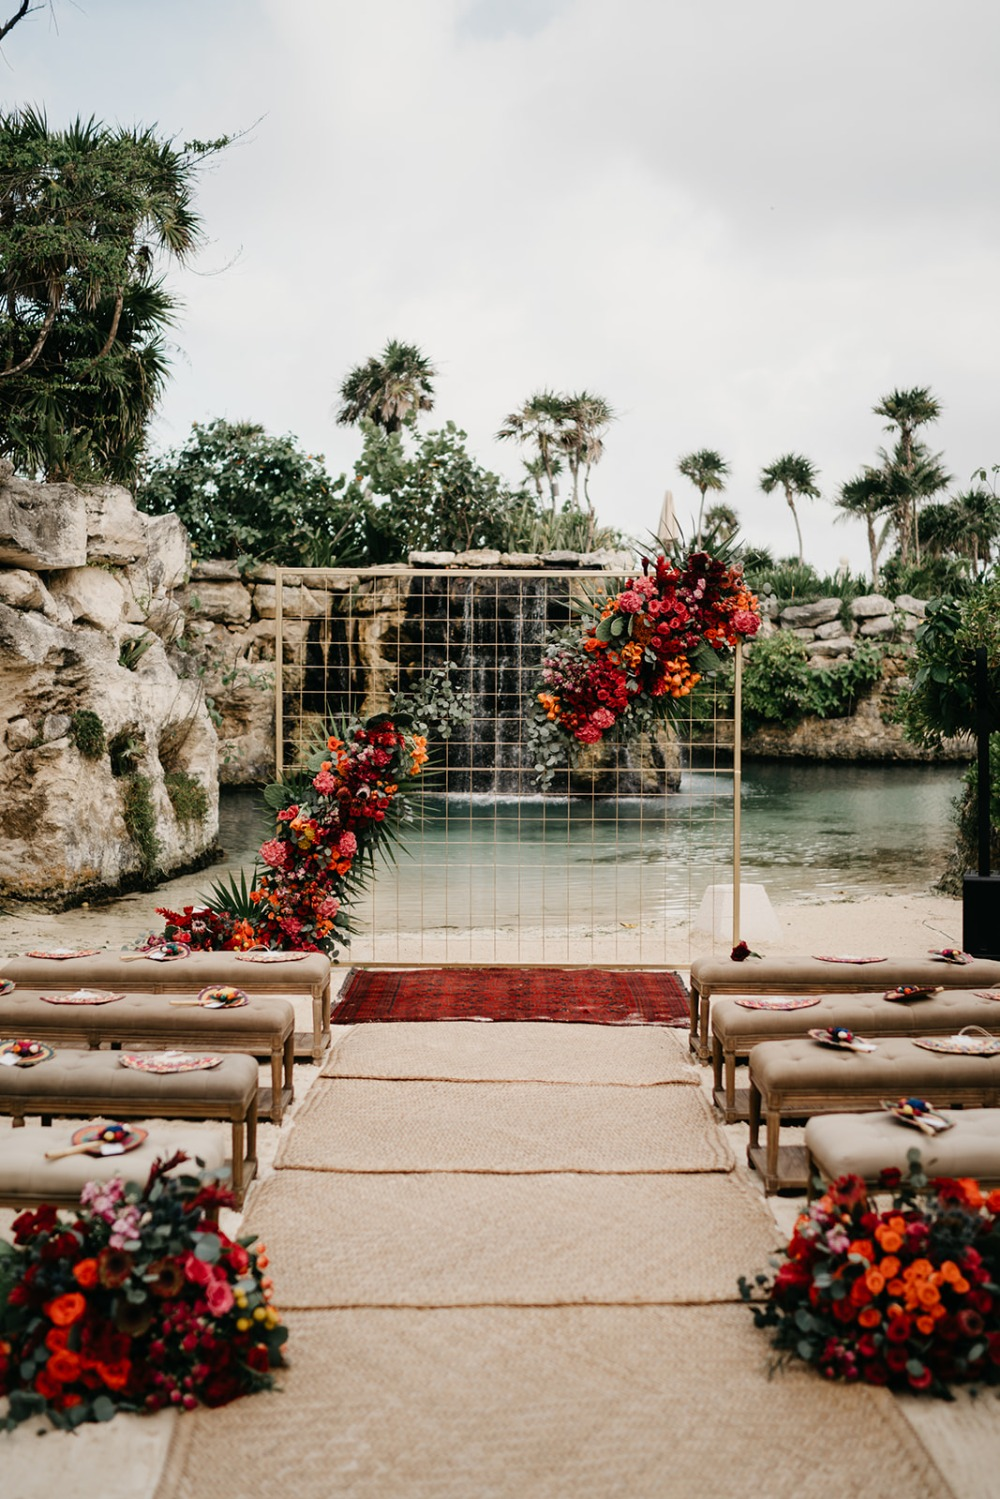 Frida Kahlo Inspired colorful Mexico ceremony set up